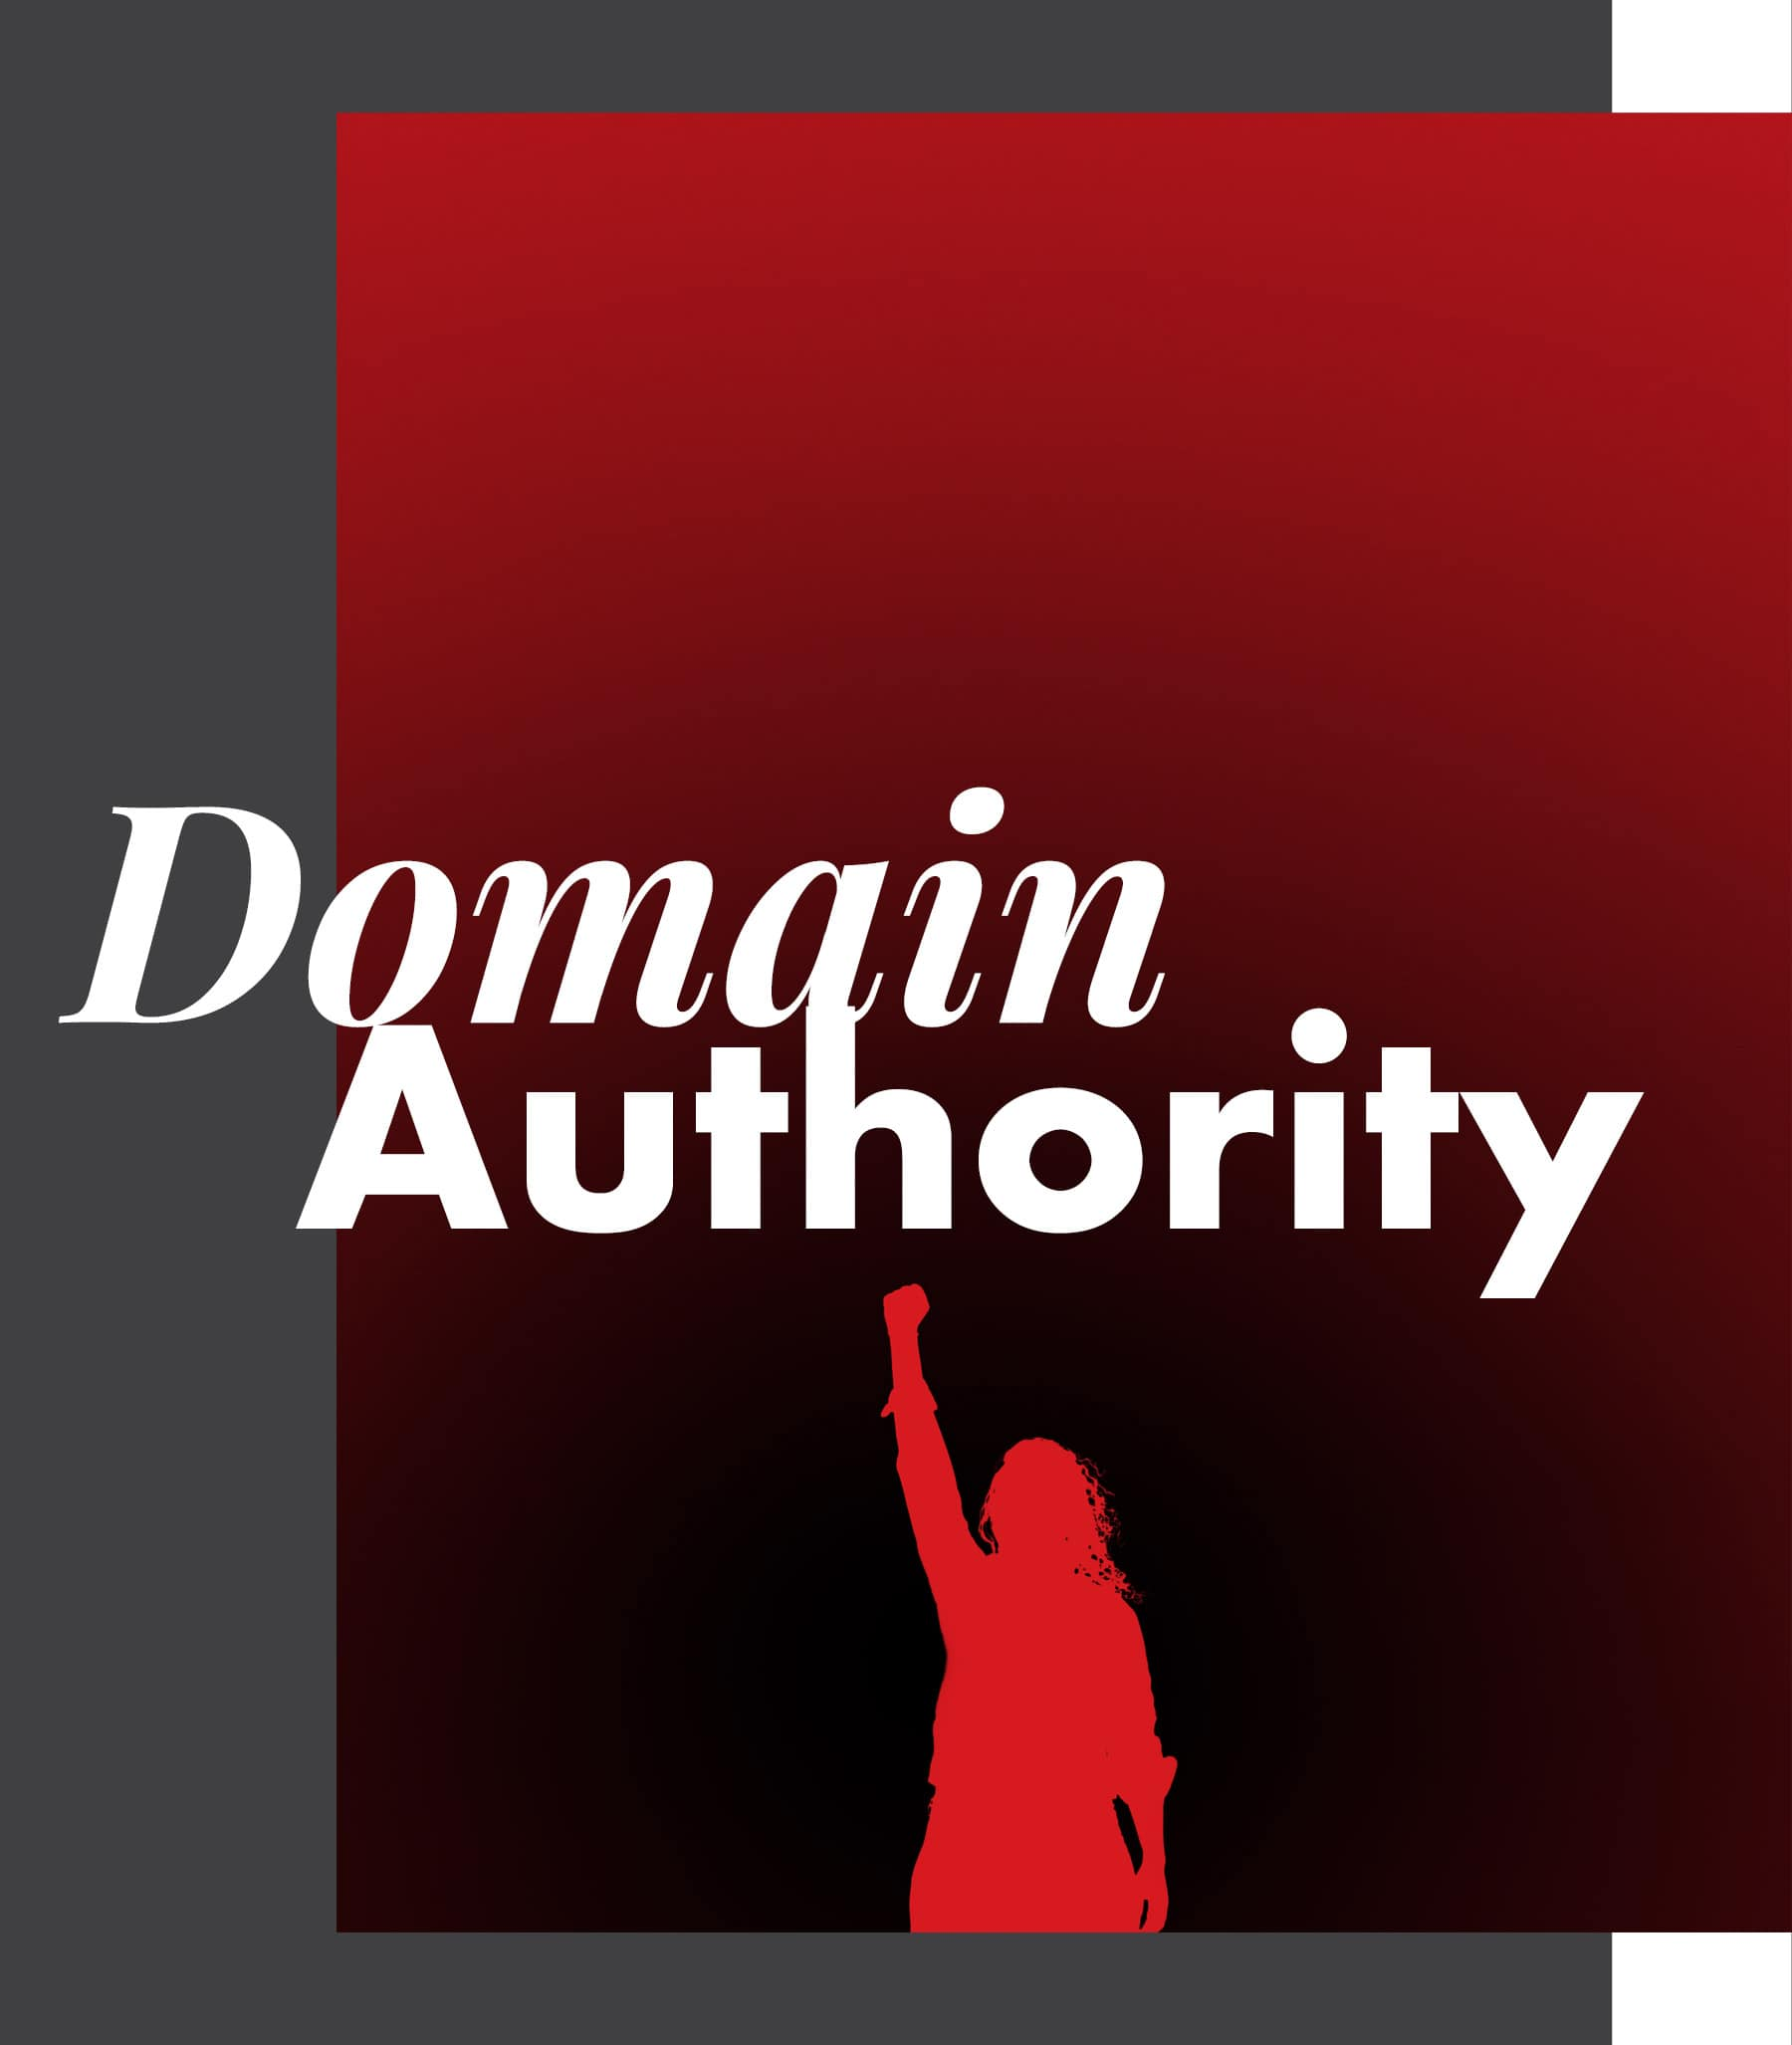 domain authority and improving search engine rankings